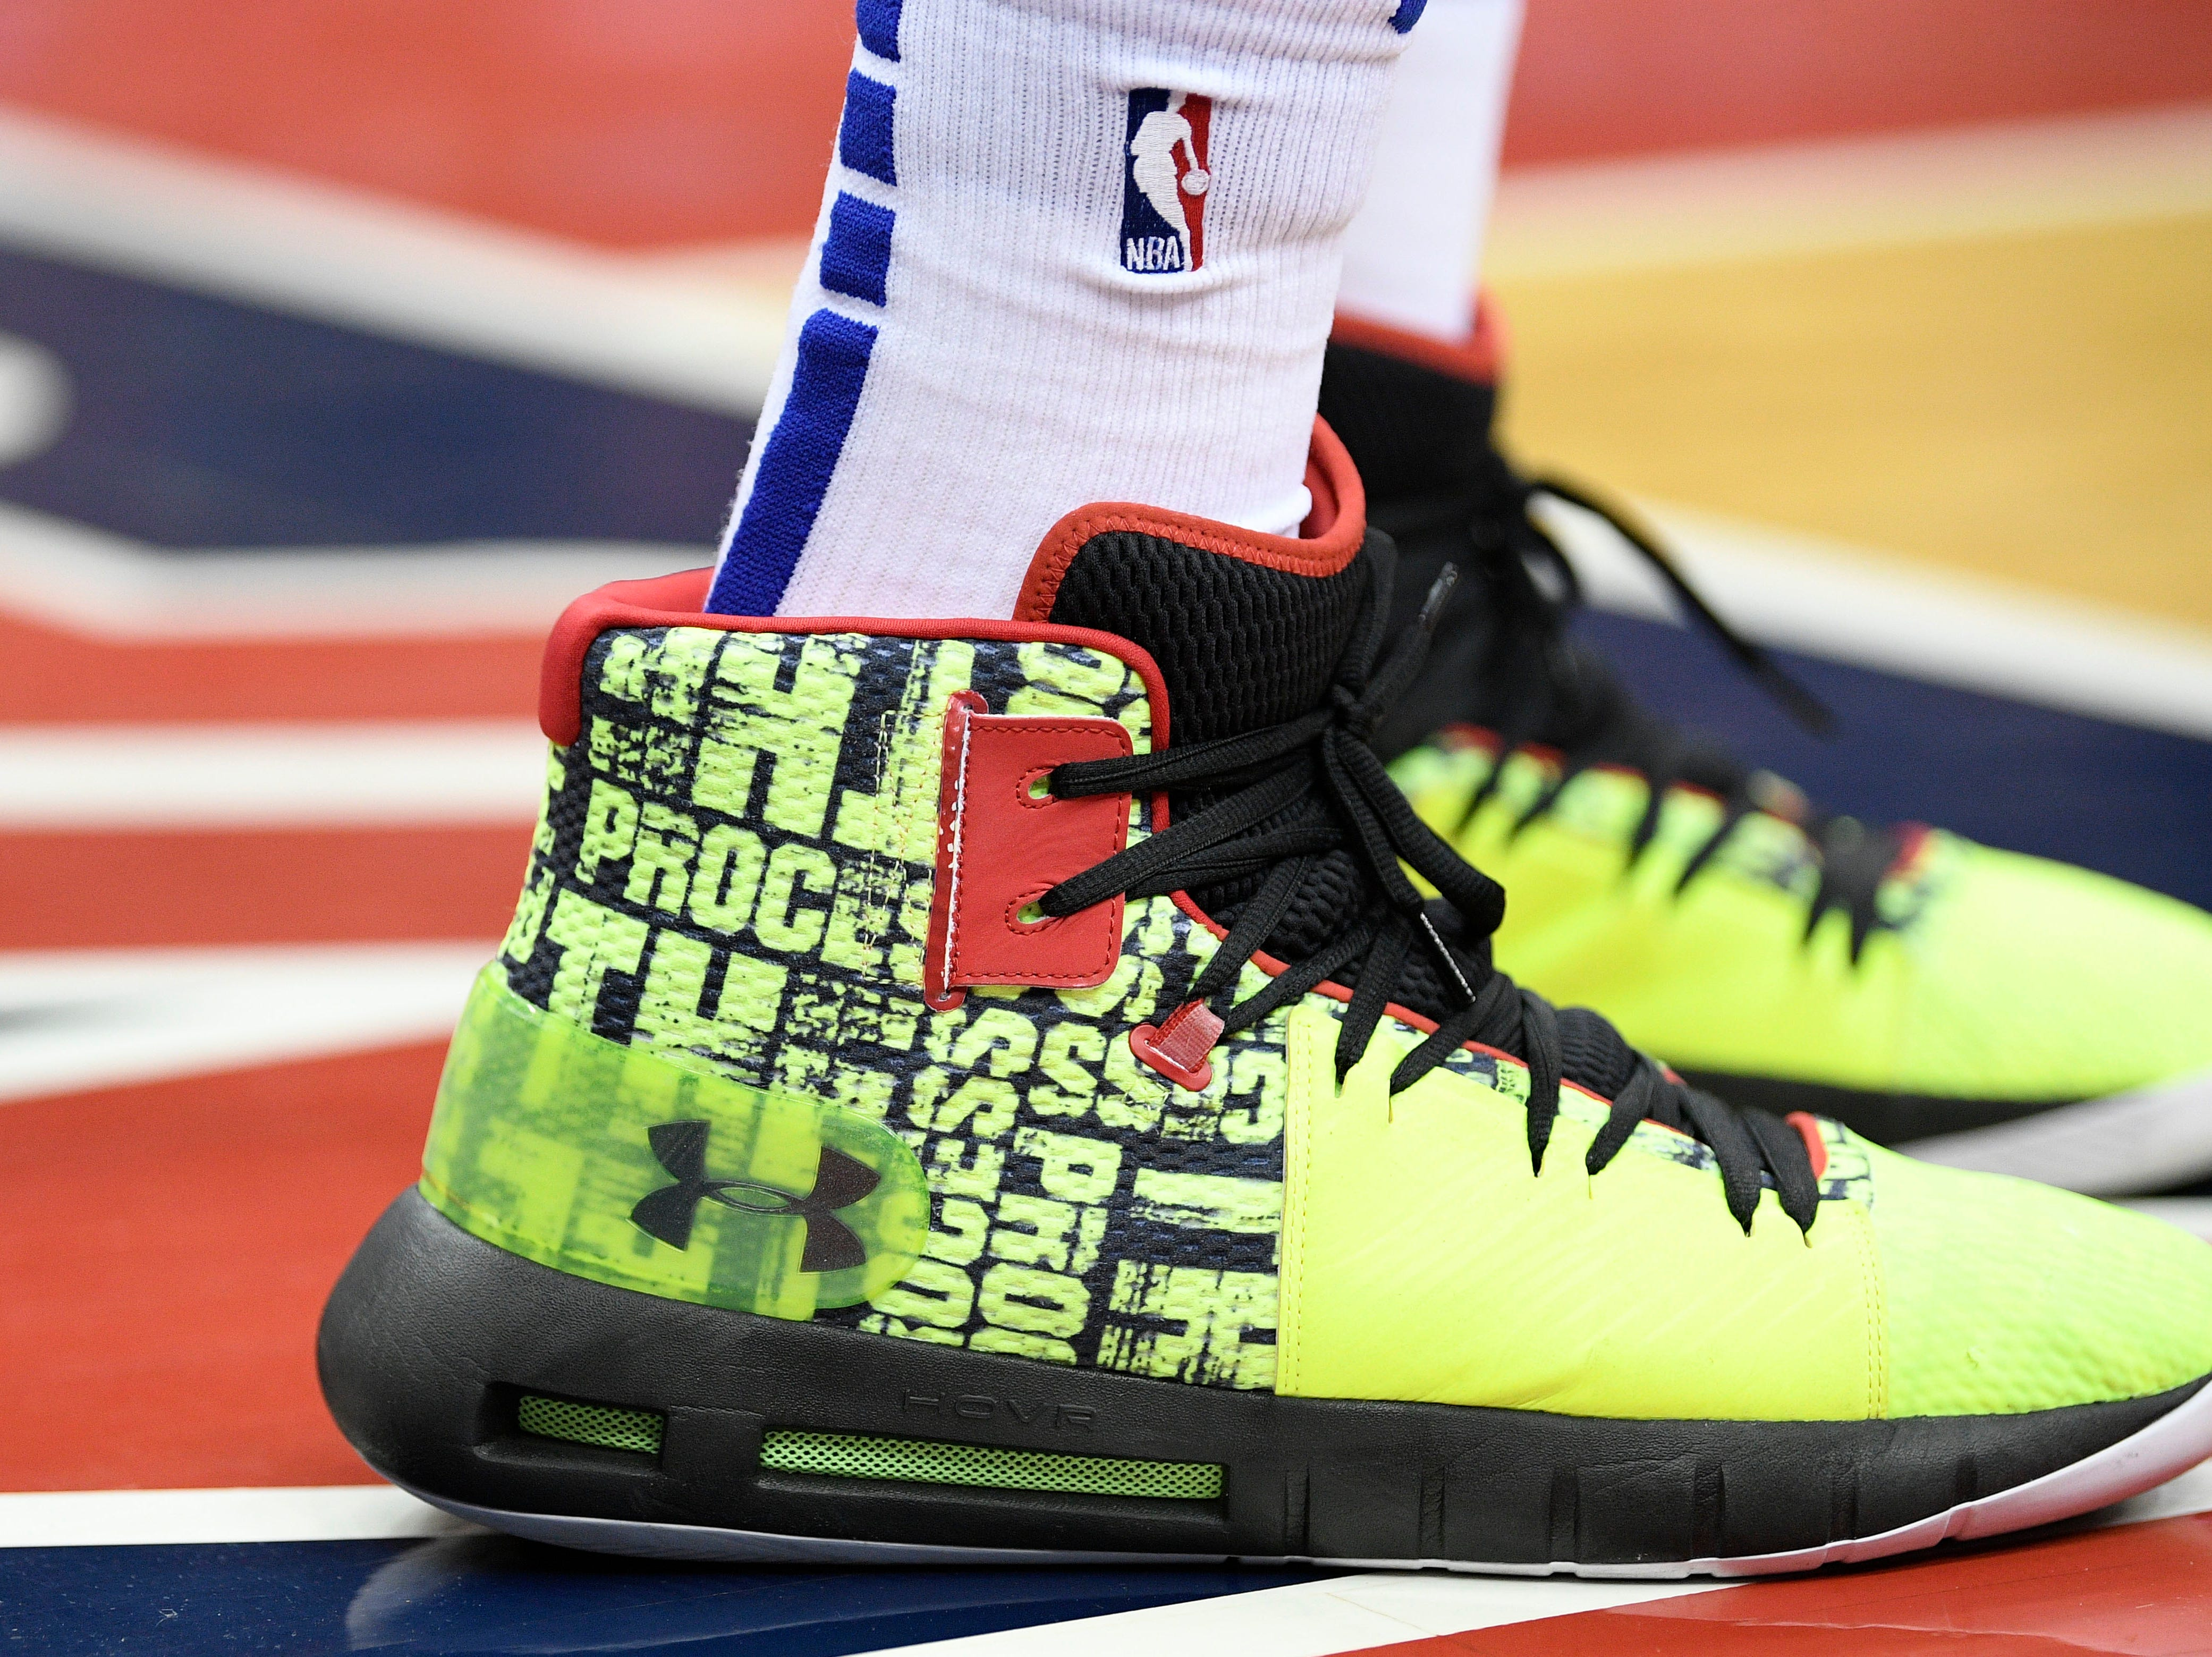 Philadelphia 76ers center Joel Embiid's shoes are seen on the court during the second half of an NBA basketball game against the Washington Wizards, Wednesday, Jan. 9, 2019, in Washington. The Wizards won 123-106. (AP Photo/Nick Wass)